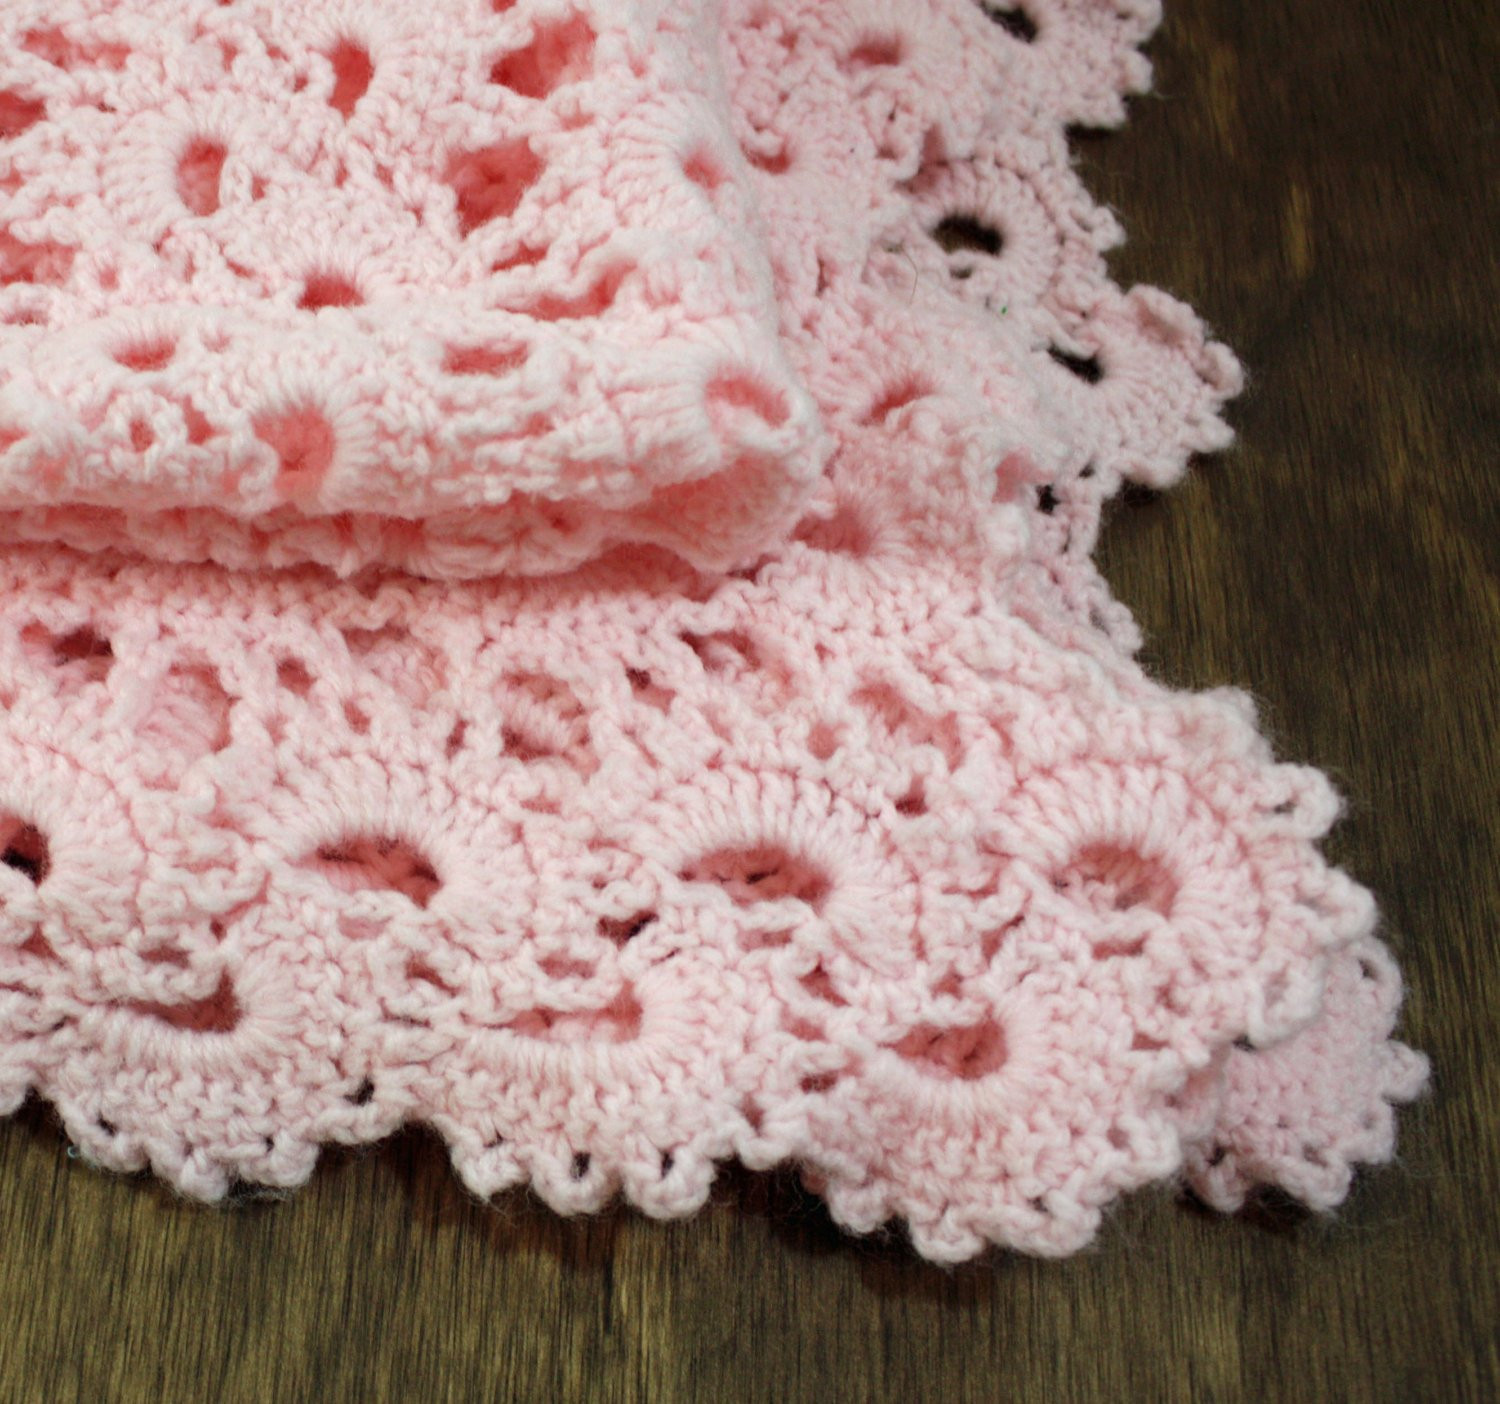 SALE Pink Crocheted Baby Blanket